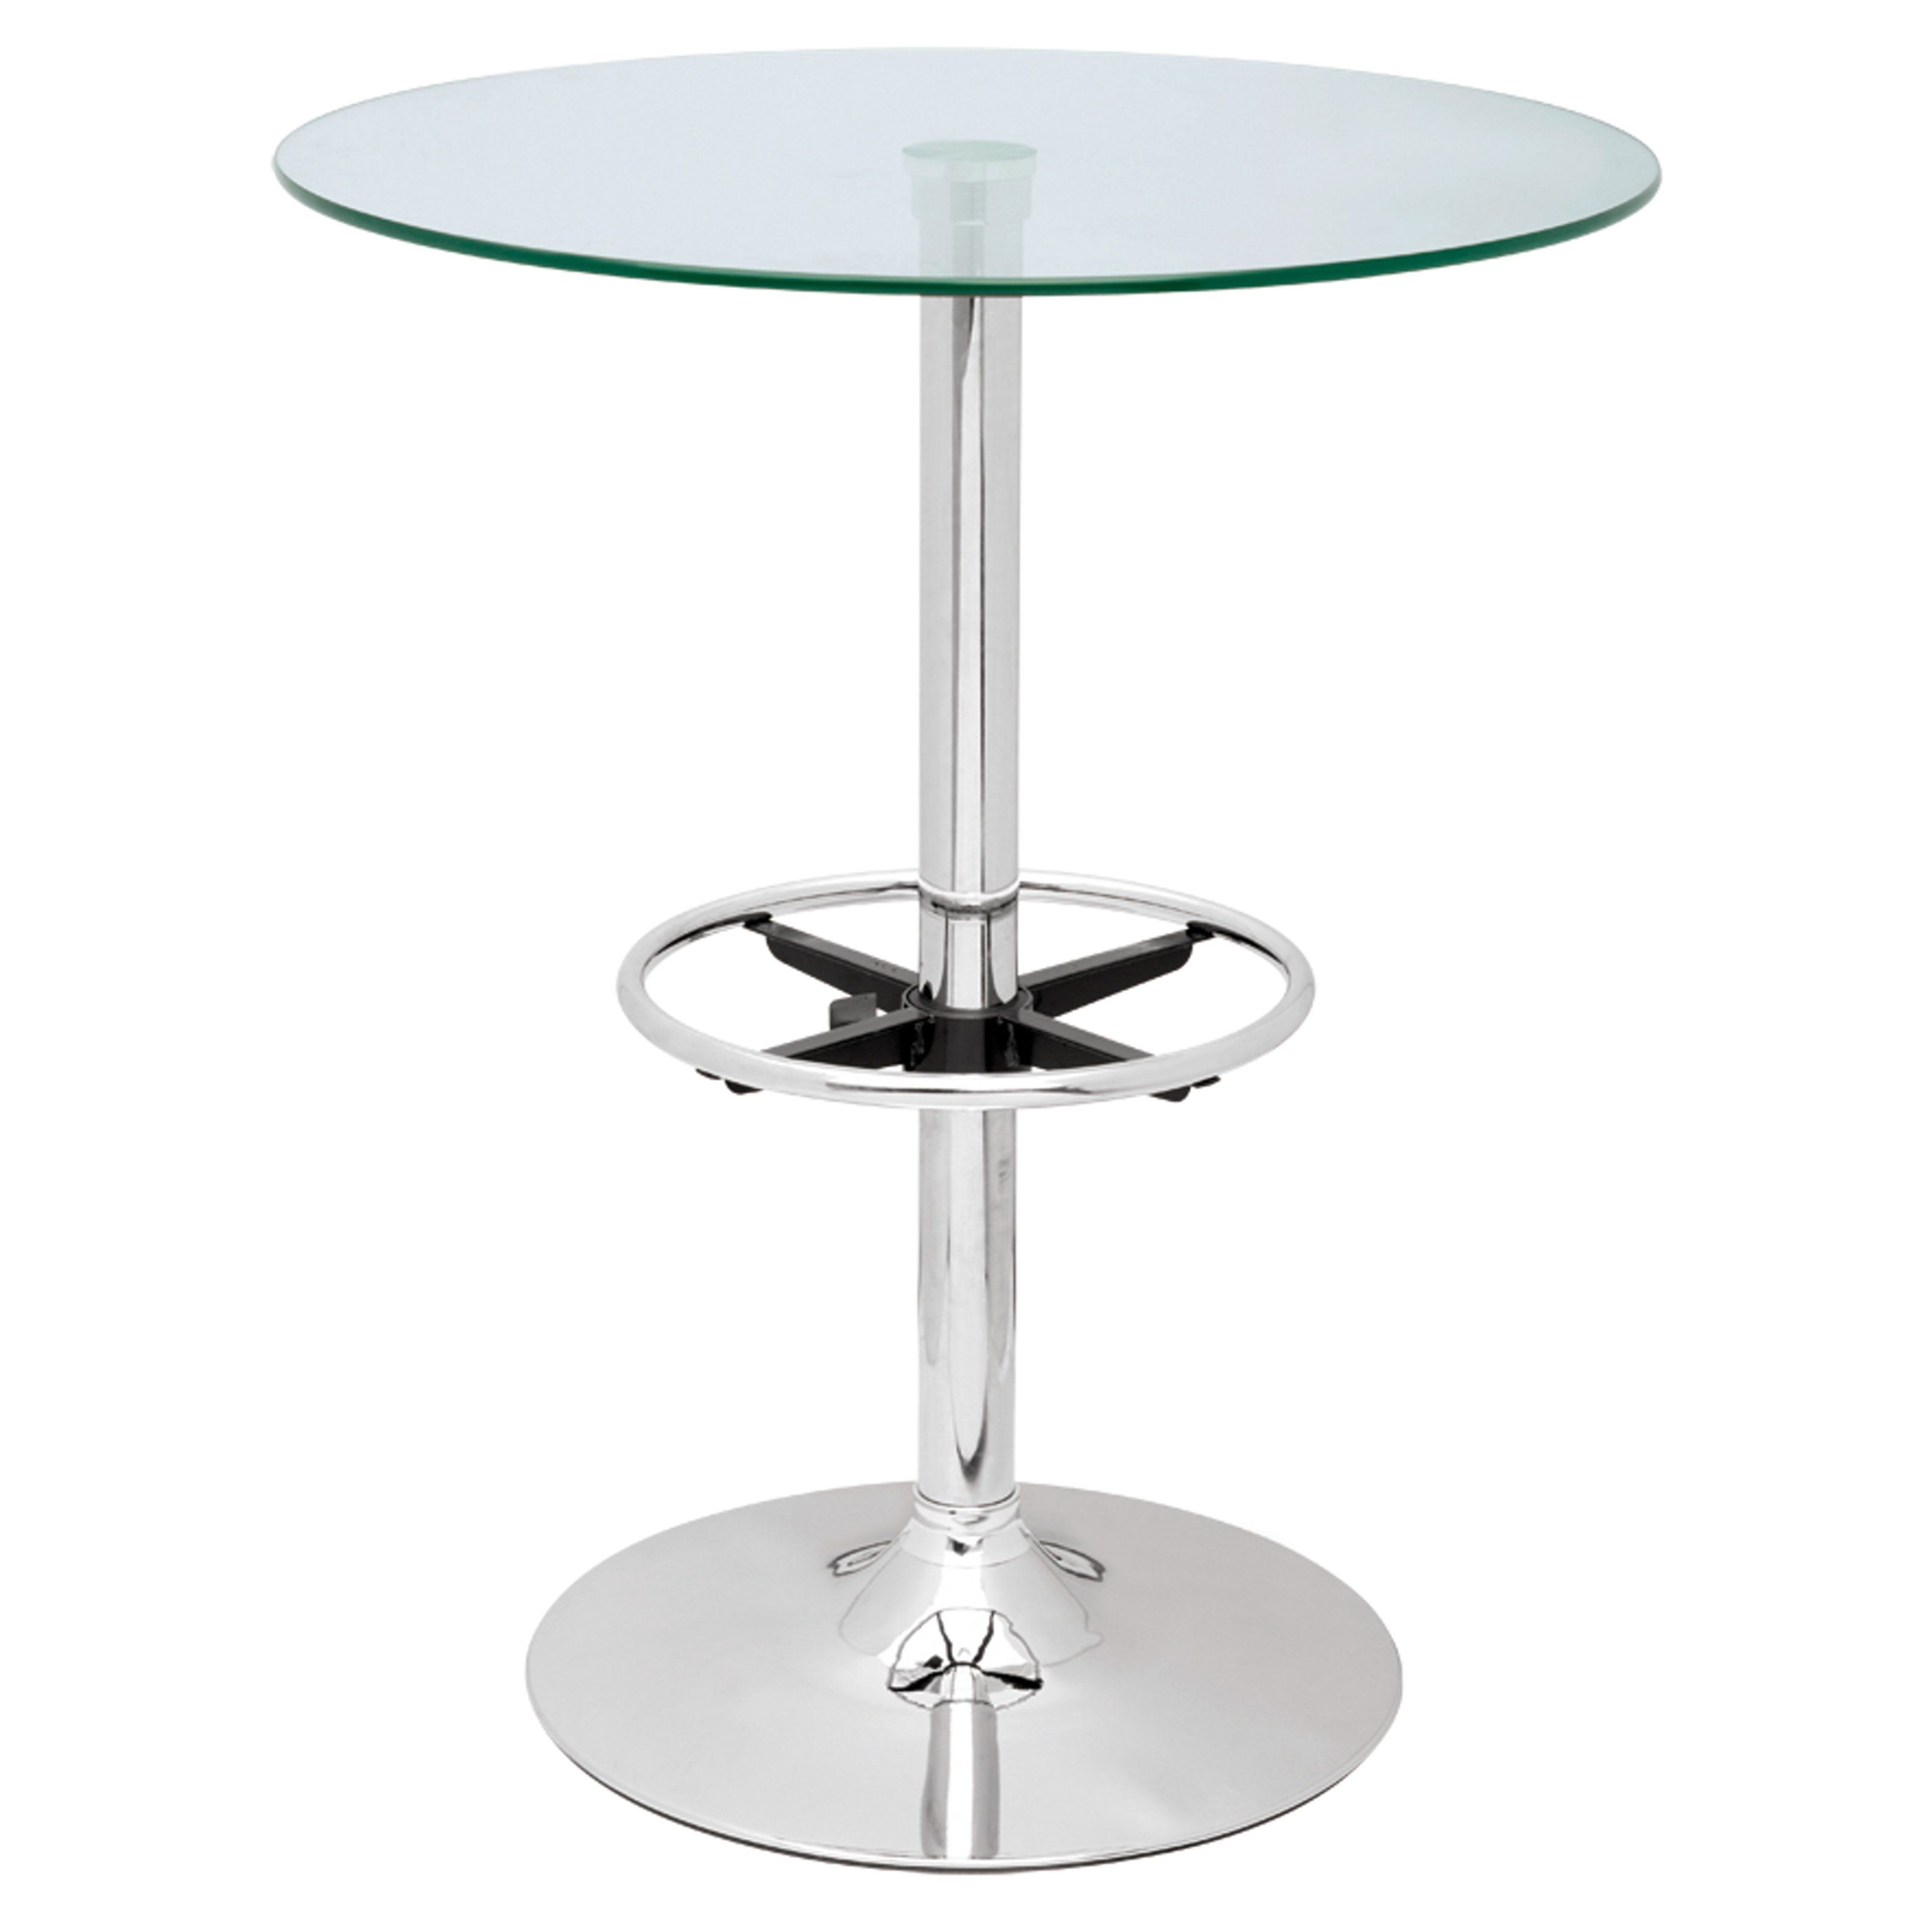 Chintaly Modern Round Glass Top Pub Table   $248.82 @hayneedle